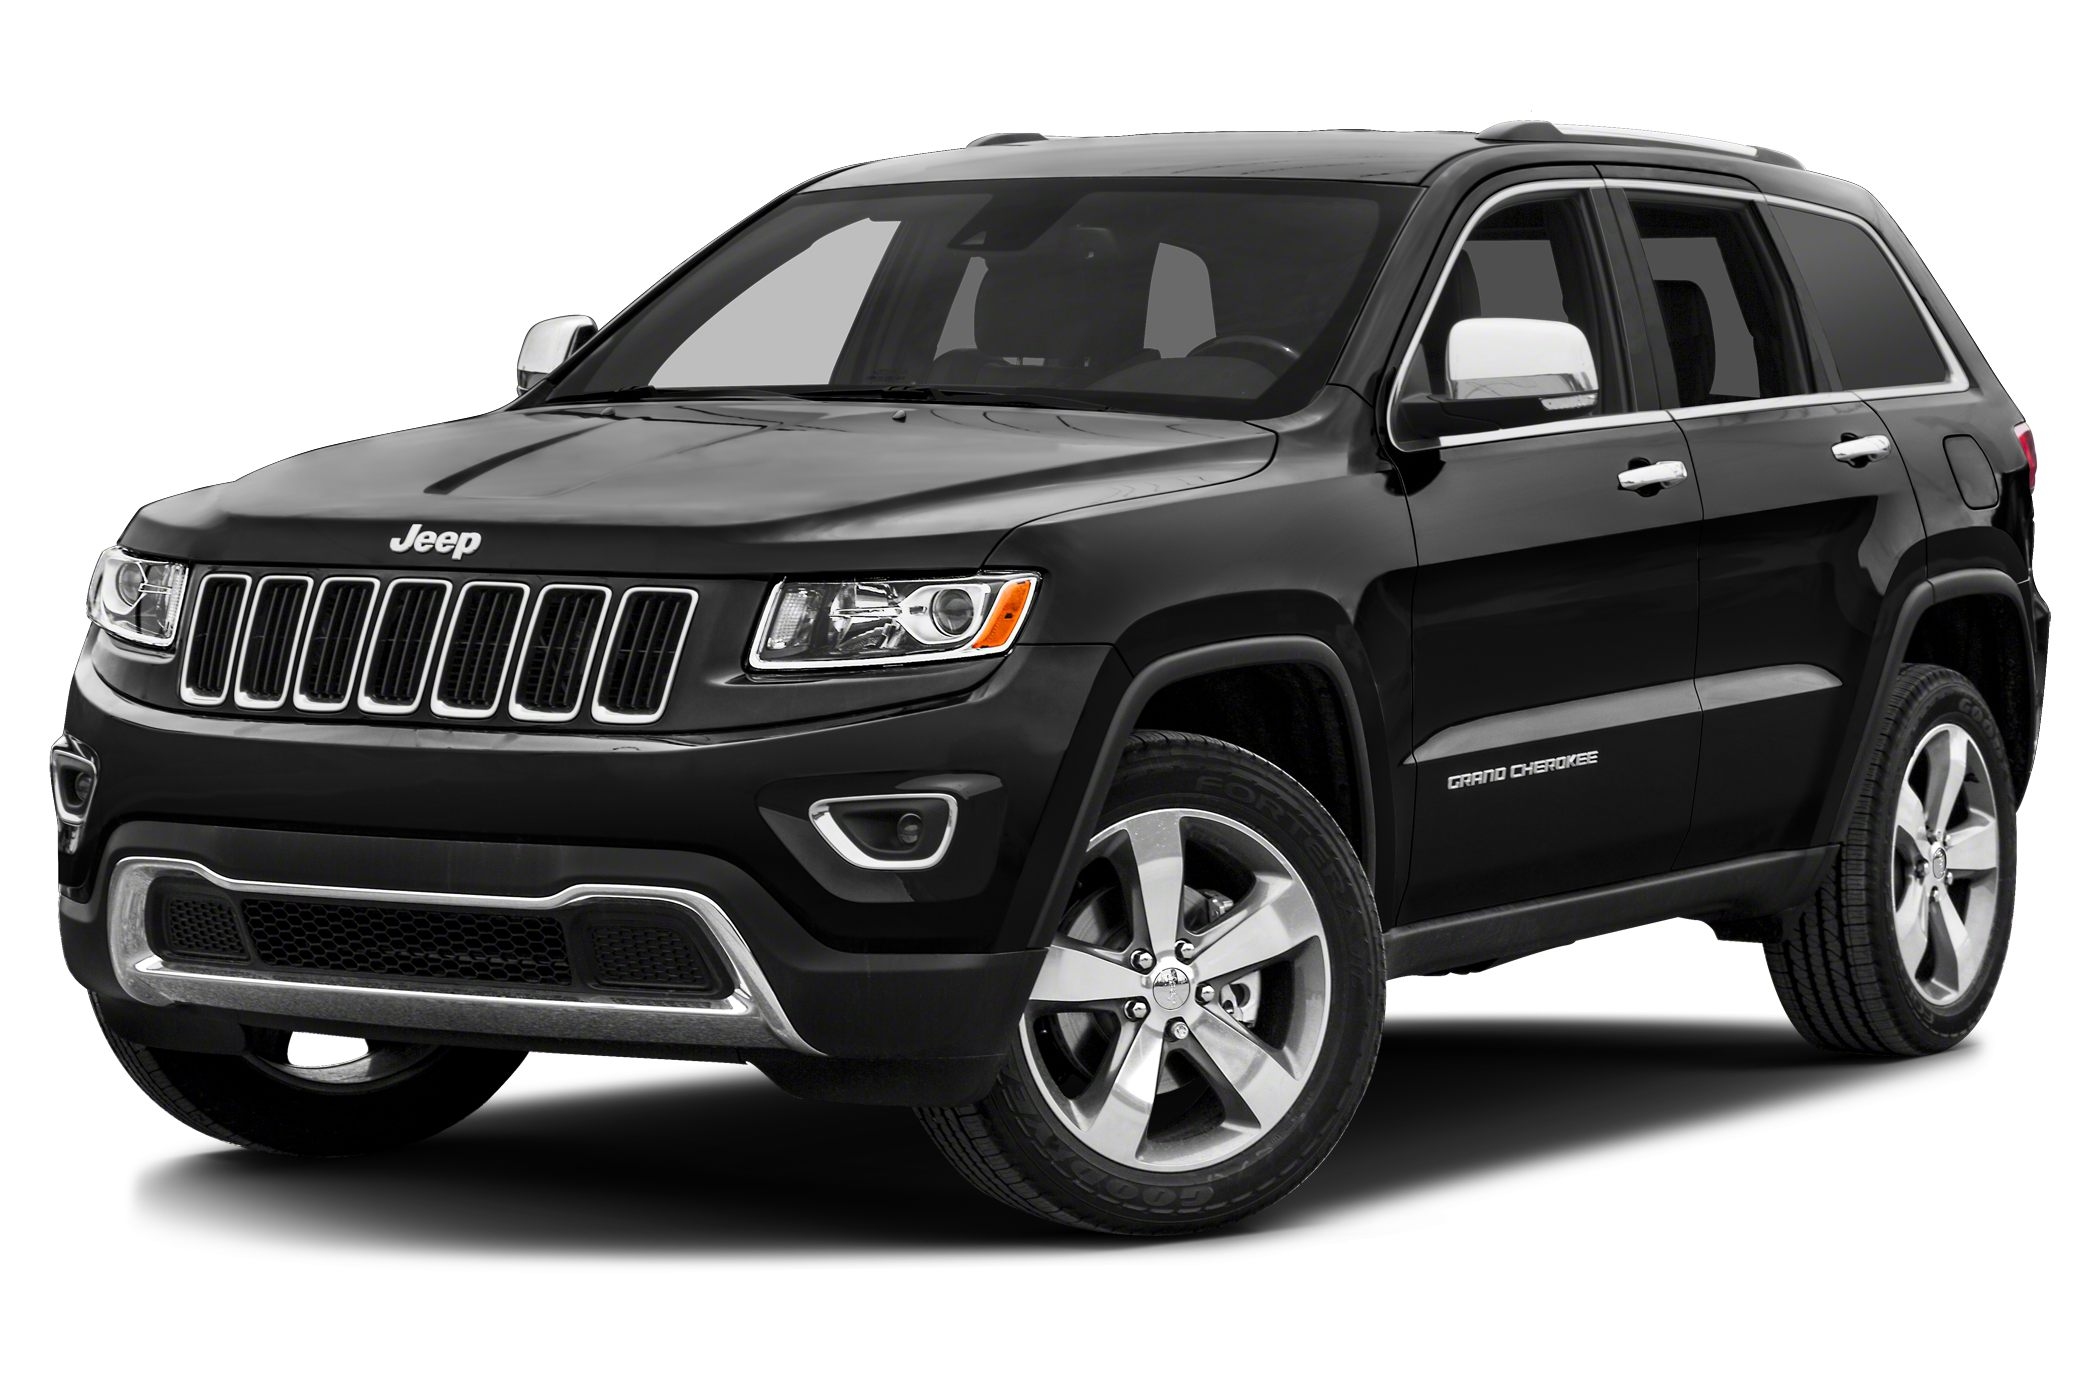 2015 Jeep Grand Cherokee Limited SUV for sale in Raleigh for $39,790 with 0 miles